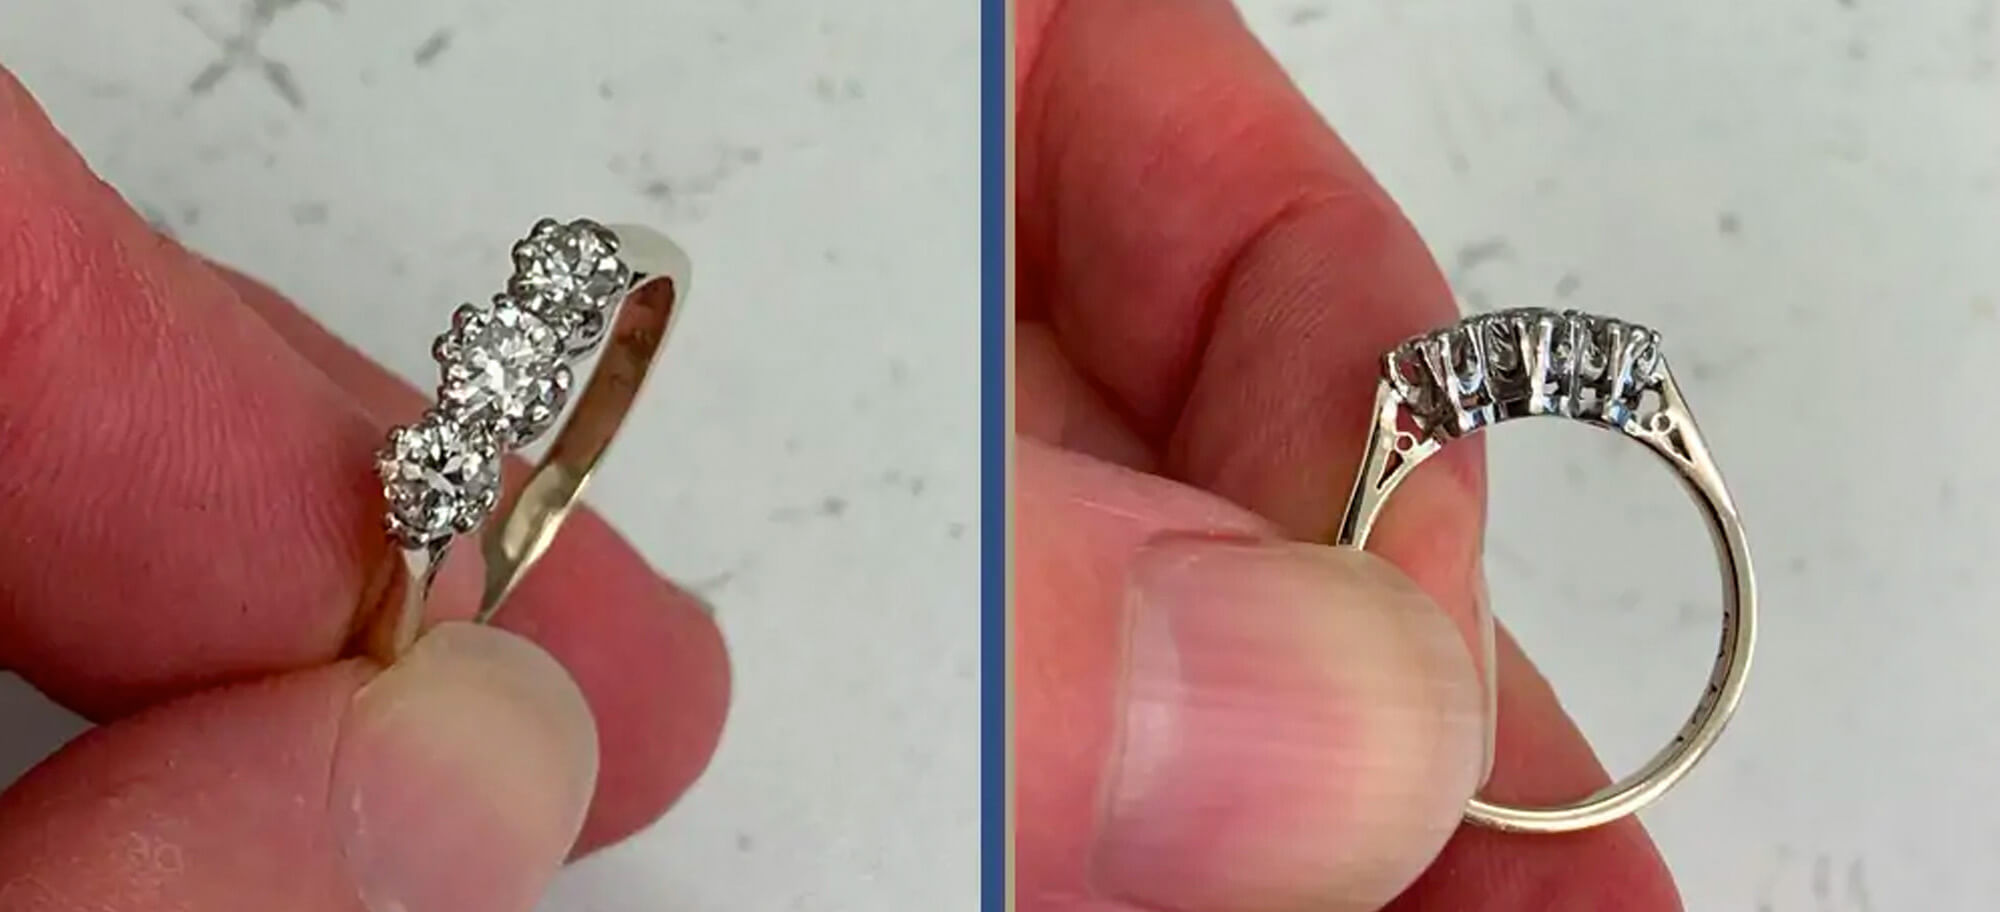 Cleaning your jewellery at home